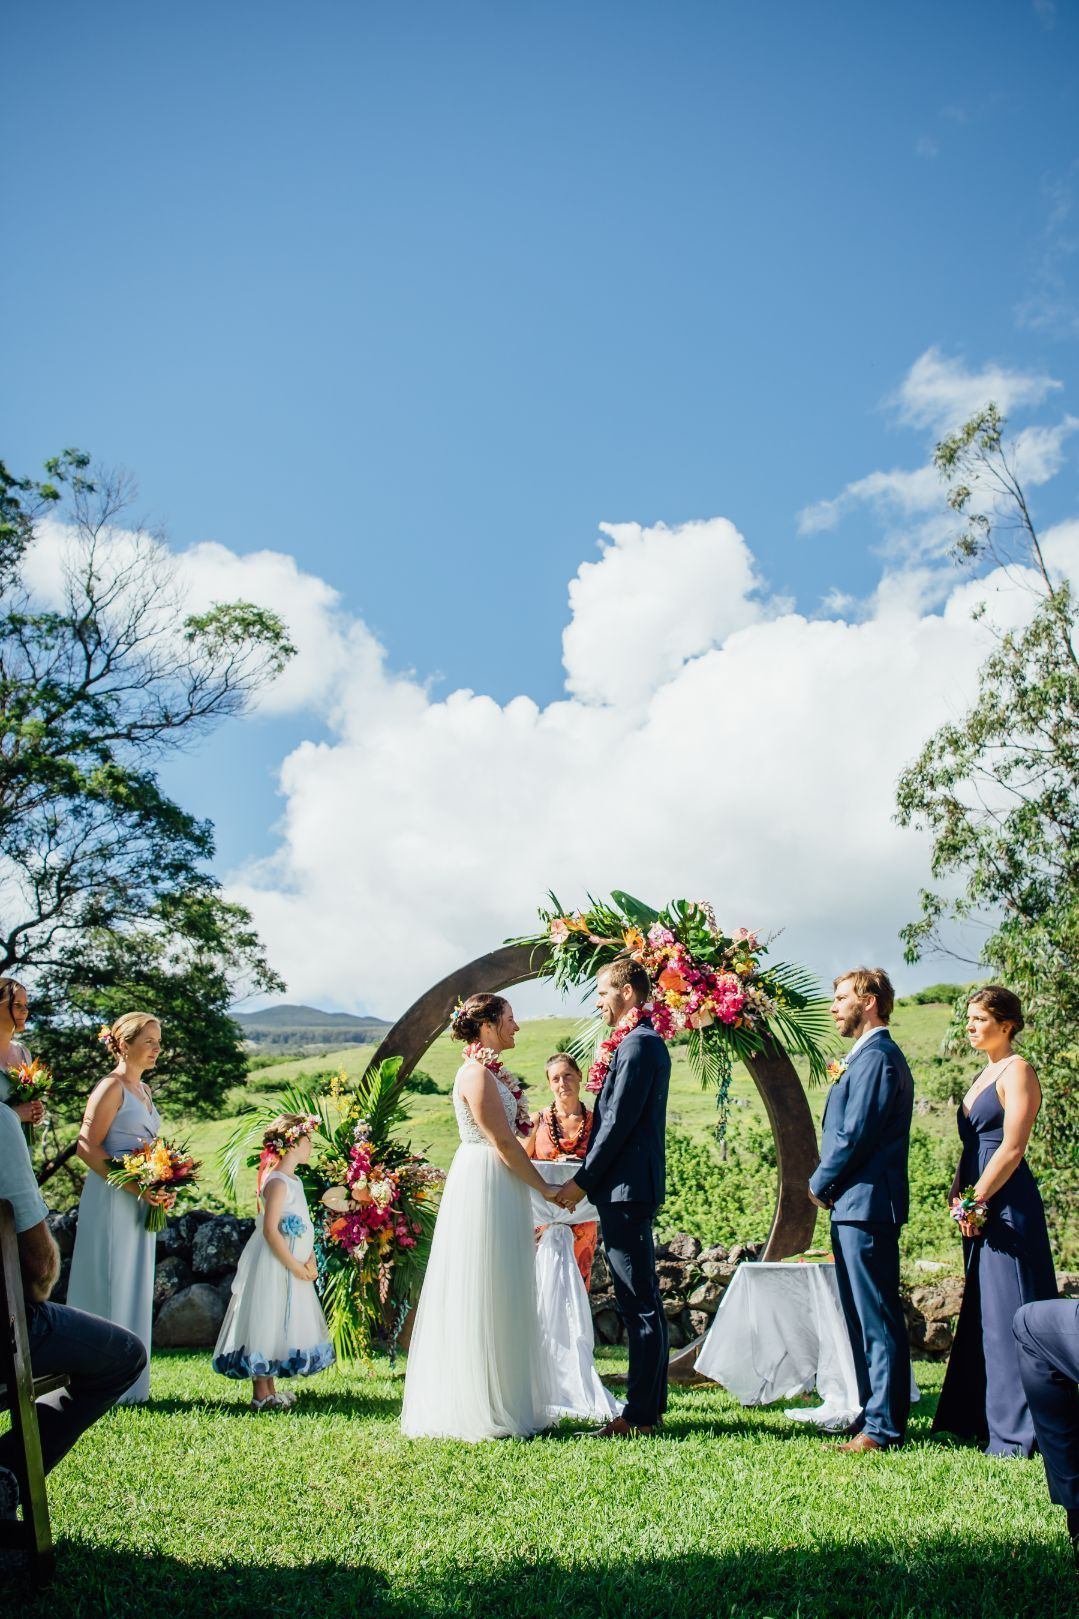 Destination Wedding Ideas Tropical Wedding In Hawaii Destination Wedding Planning In 2020 Hawaii Wedding Big Island Wedding Hawaii Destination Wedding